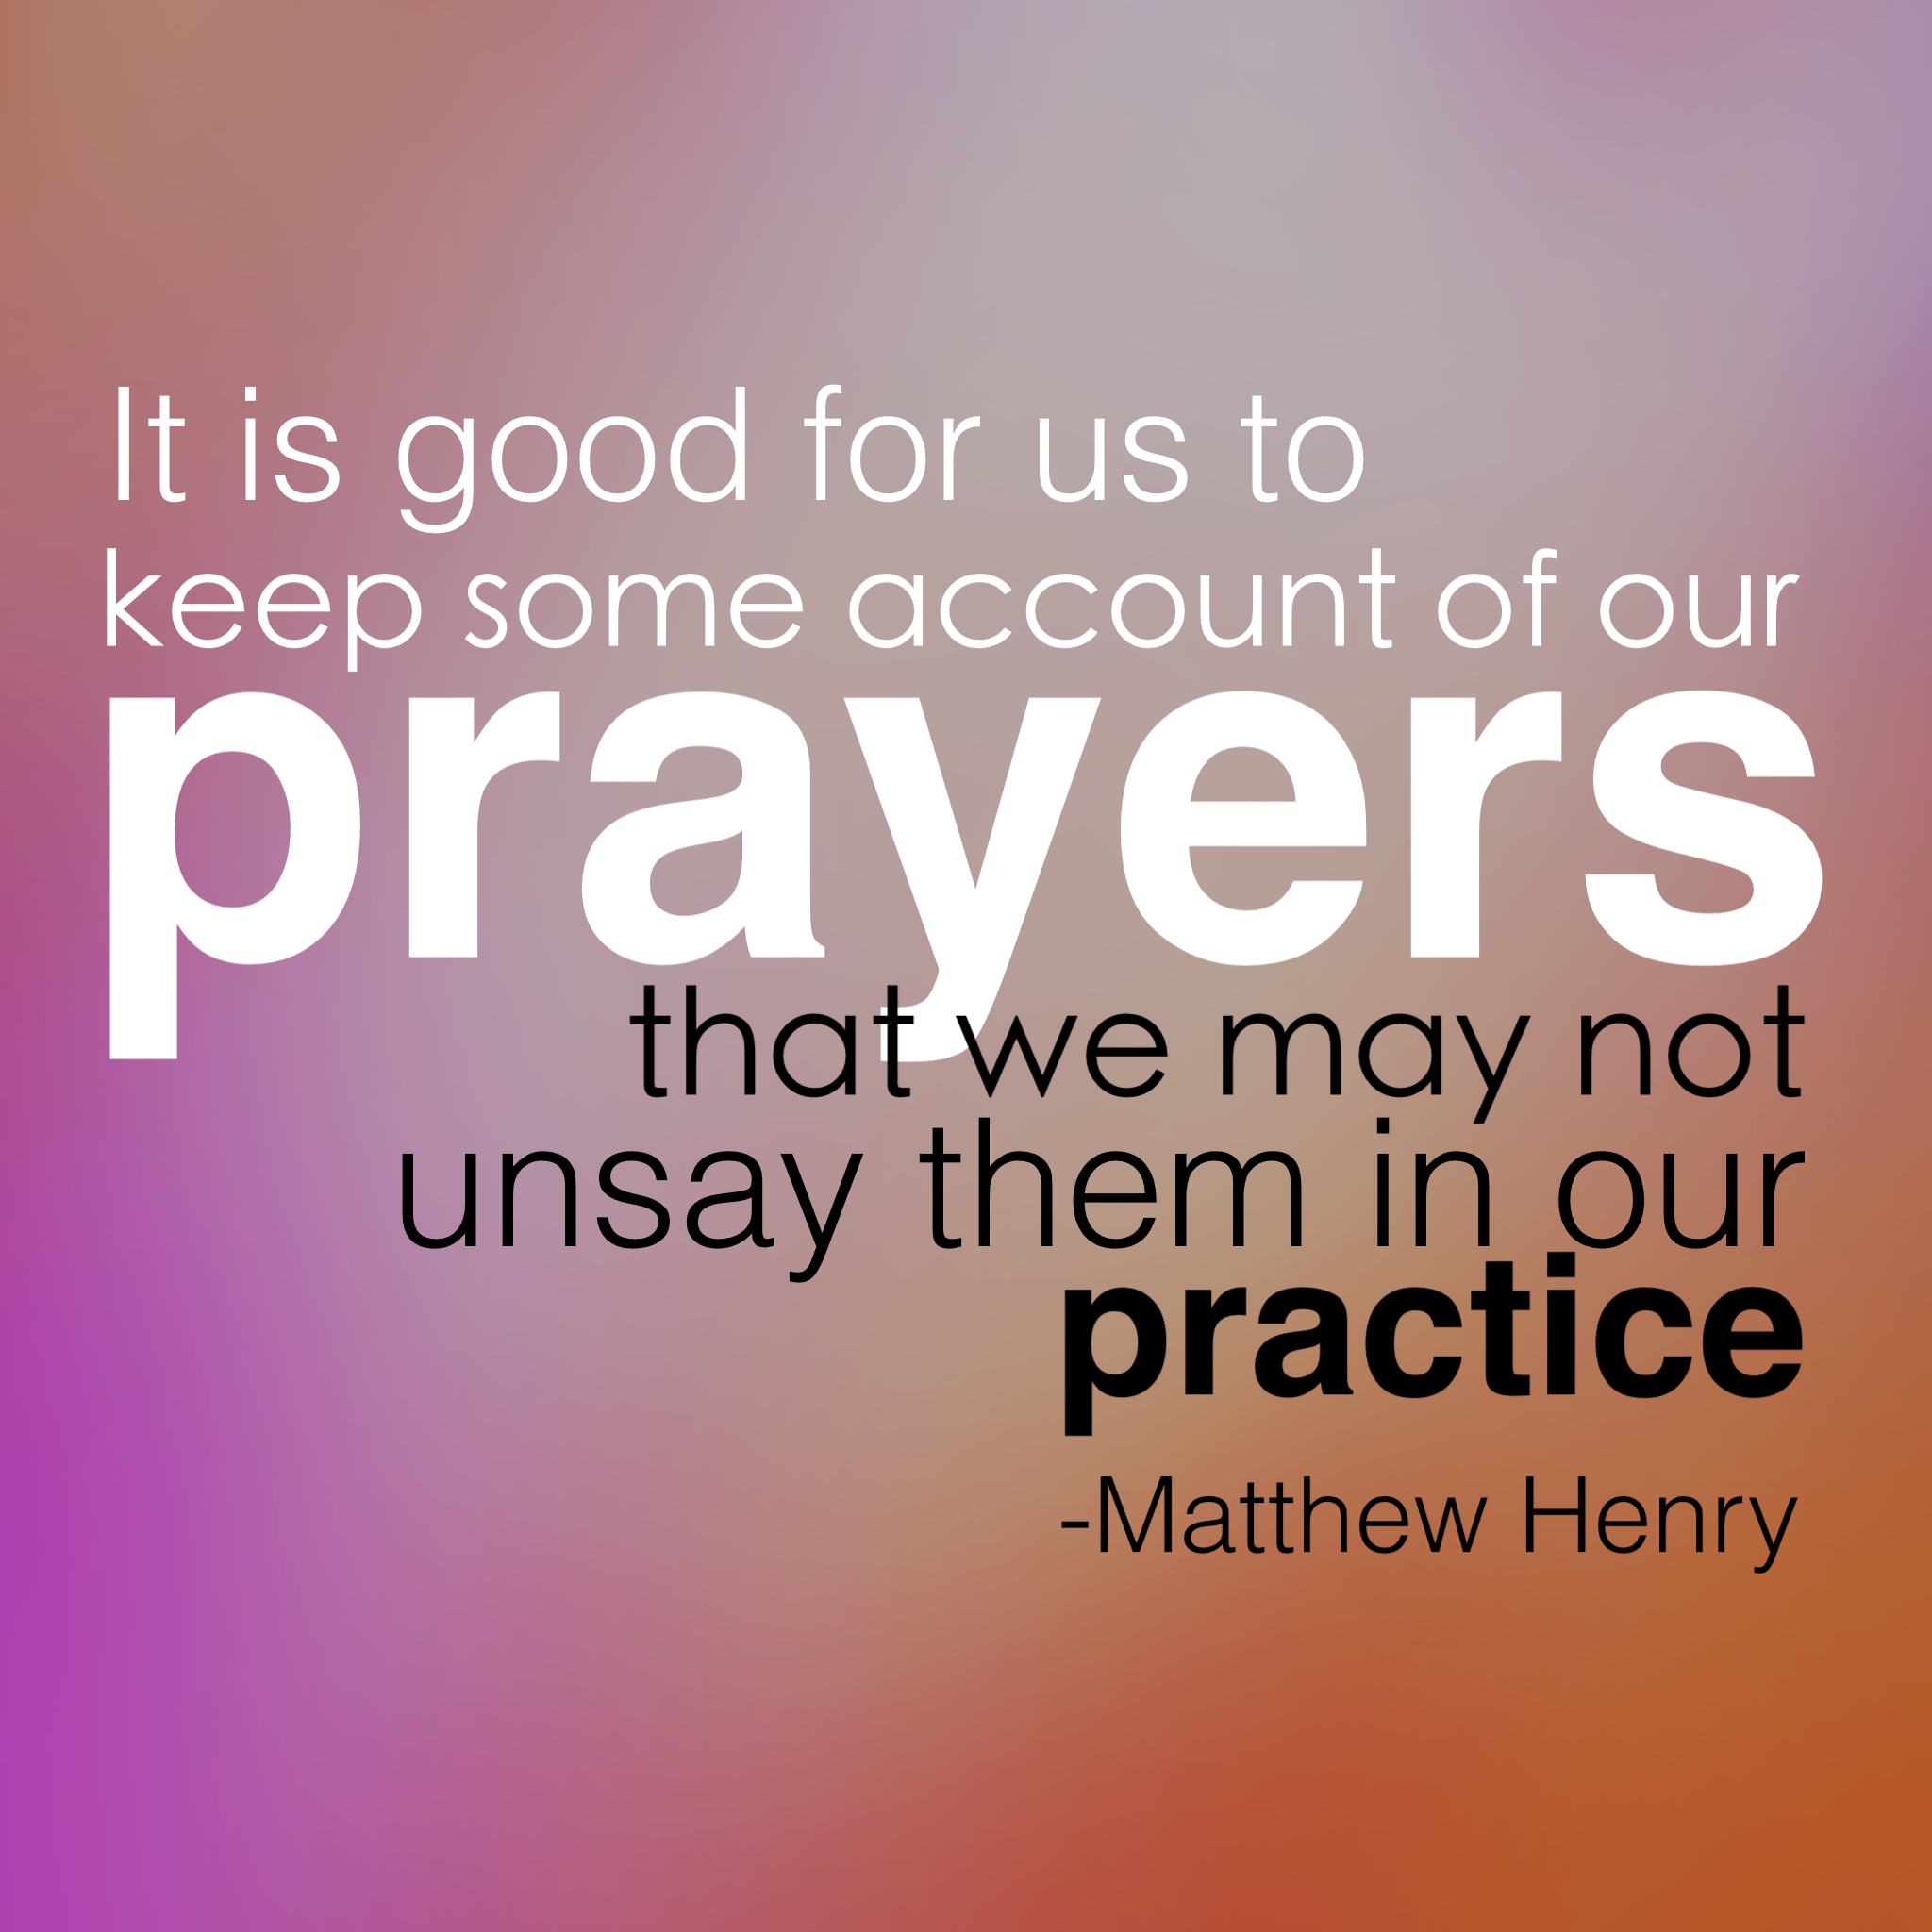 """It is good for us to keep some account of our prayers that we may not unsay them in our practice."" -Matthew Henry Inspire your heart to prayer. www.chereehayes.com"